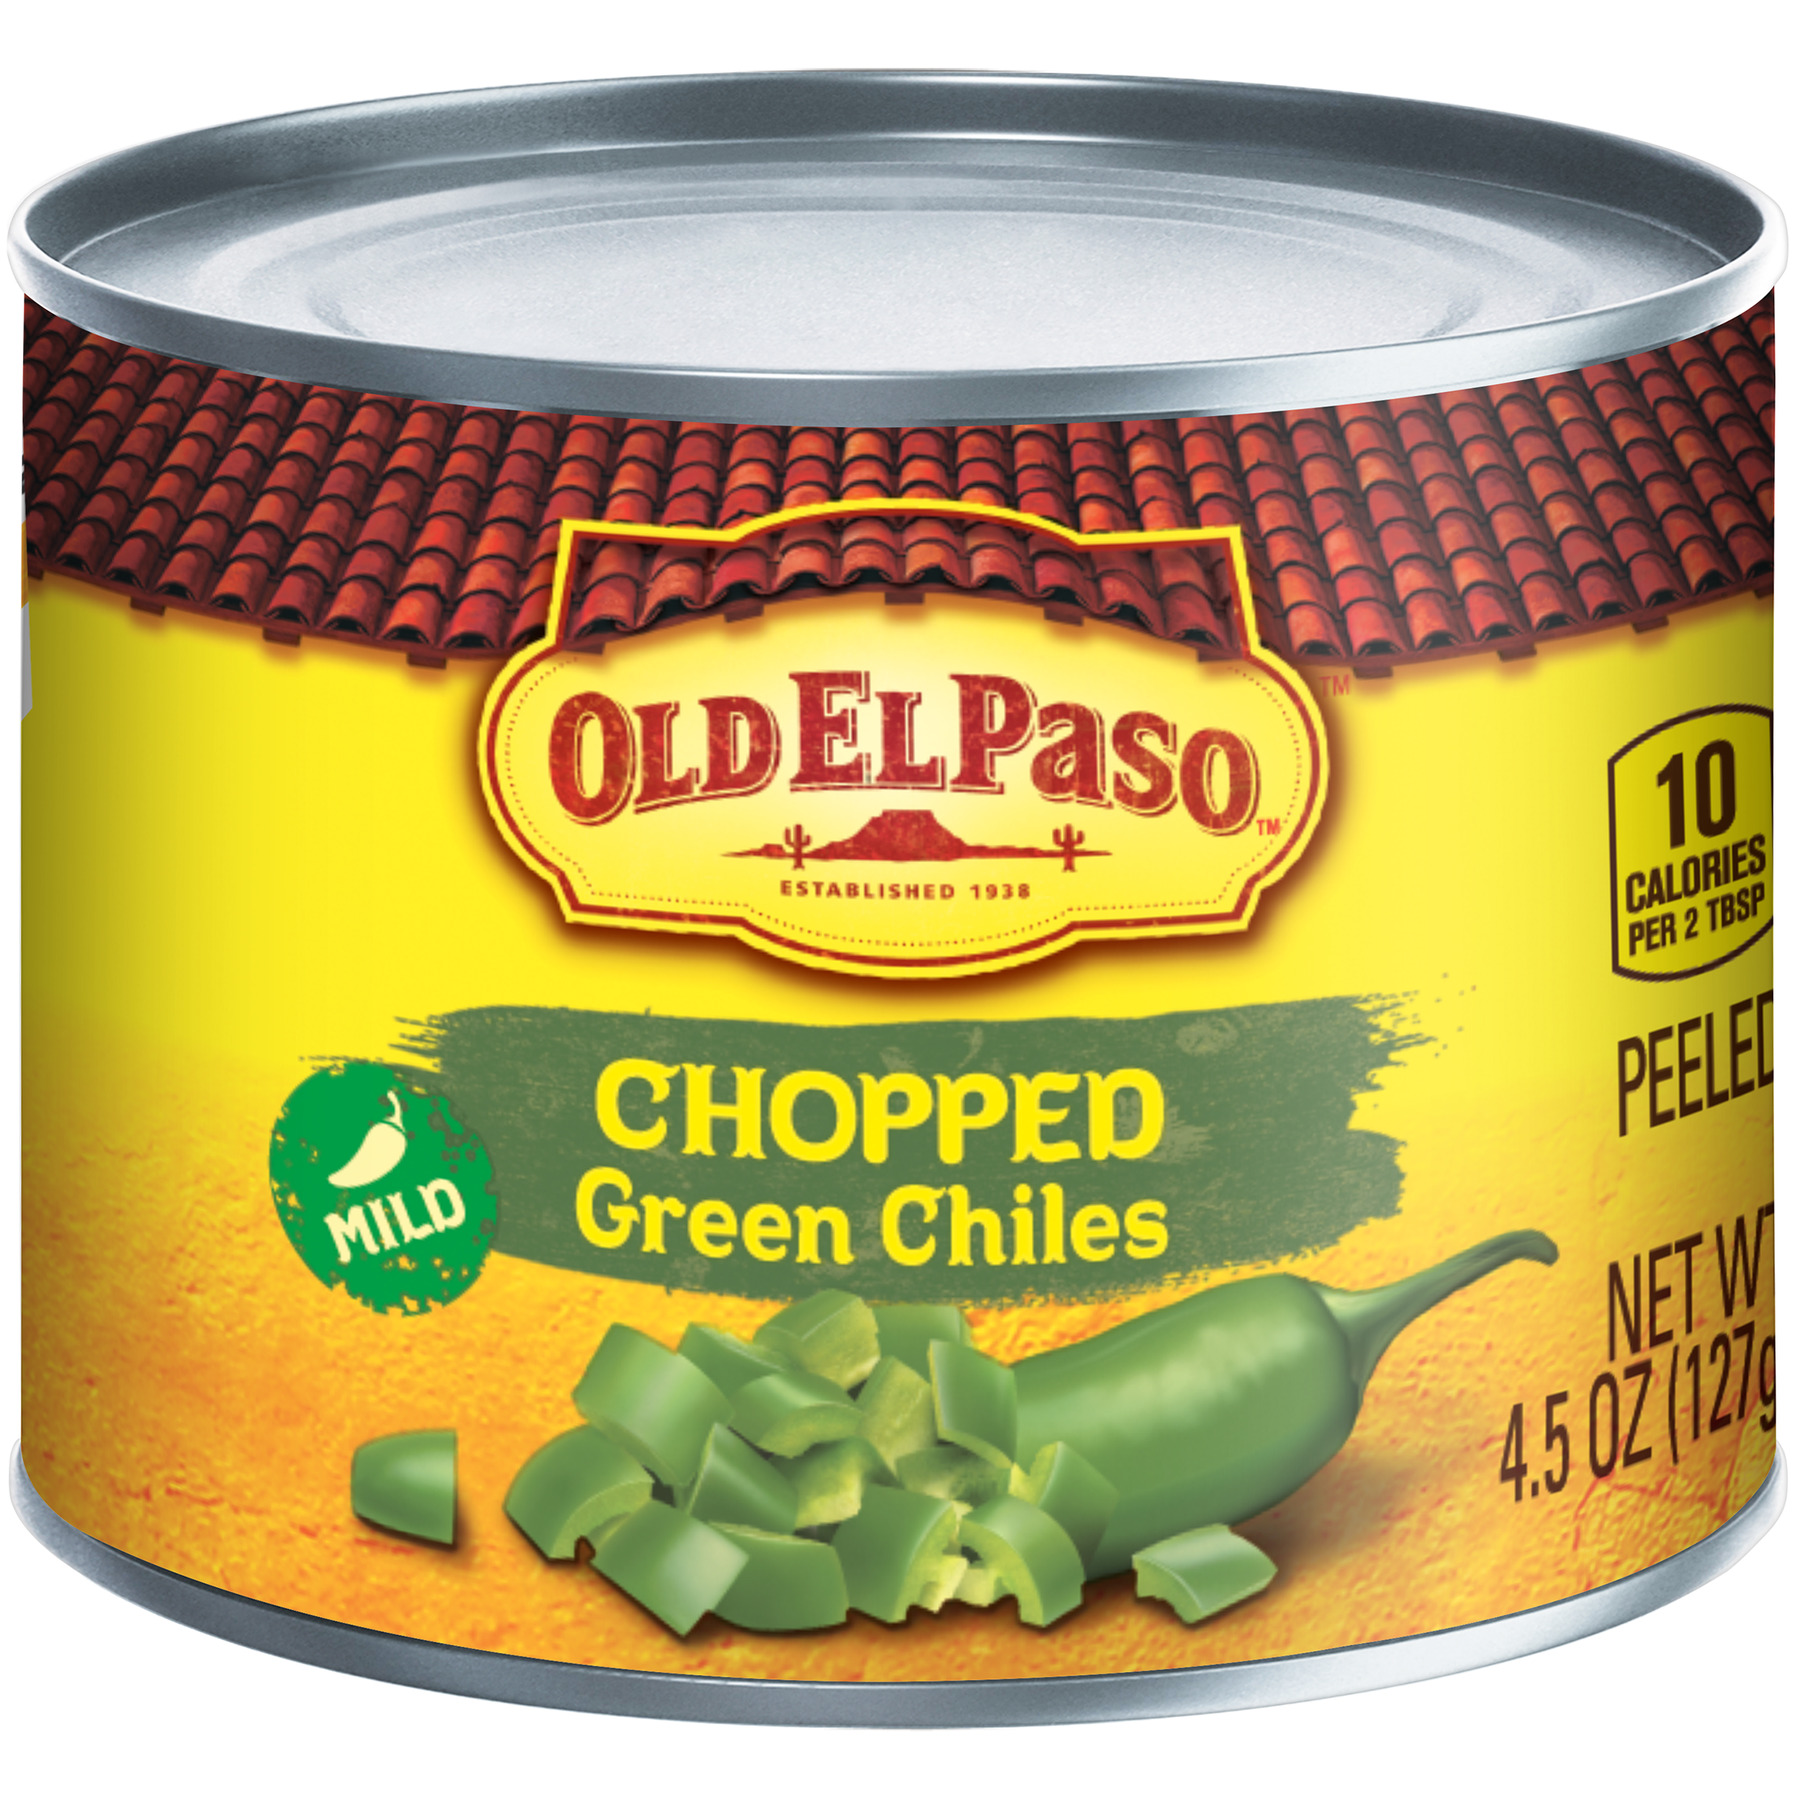 Old El Paso Mild, Chopped Green Chiles, 4.5 oz Can